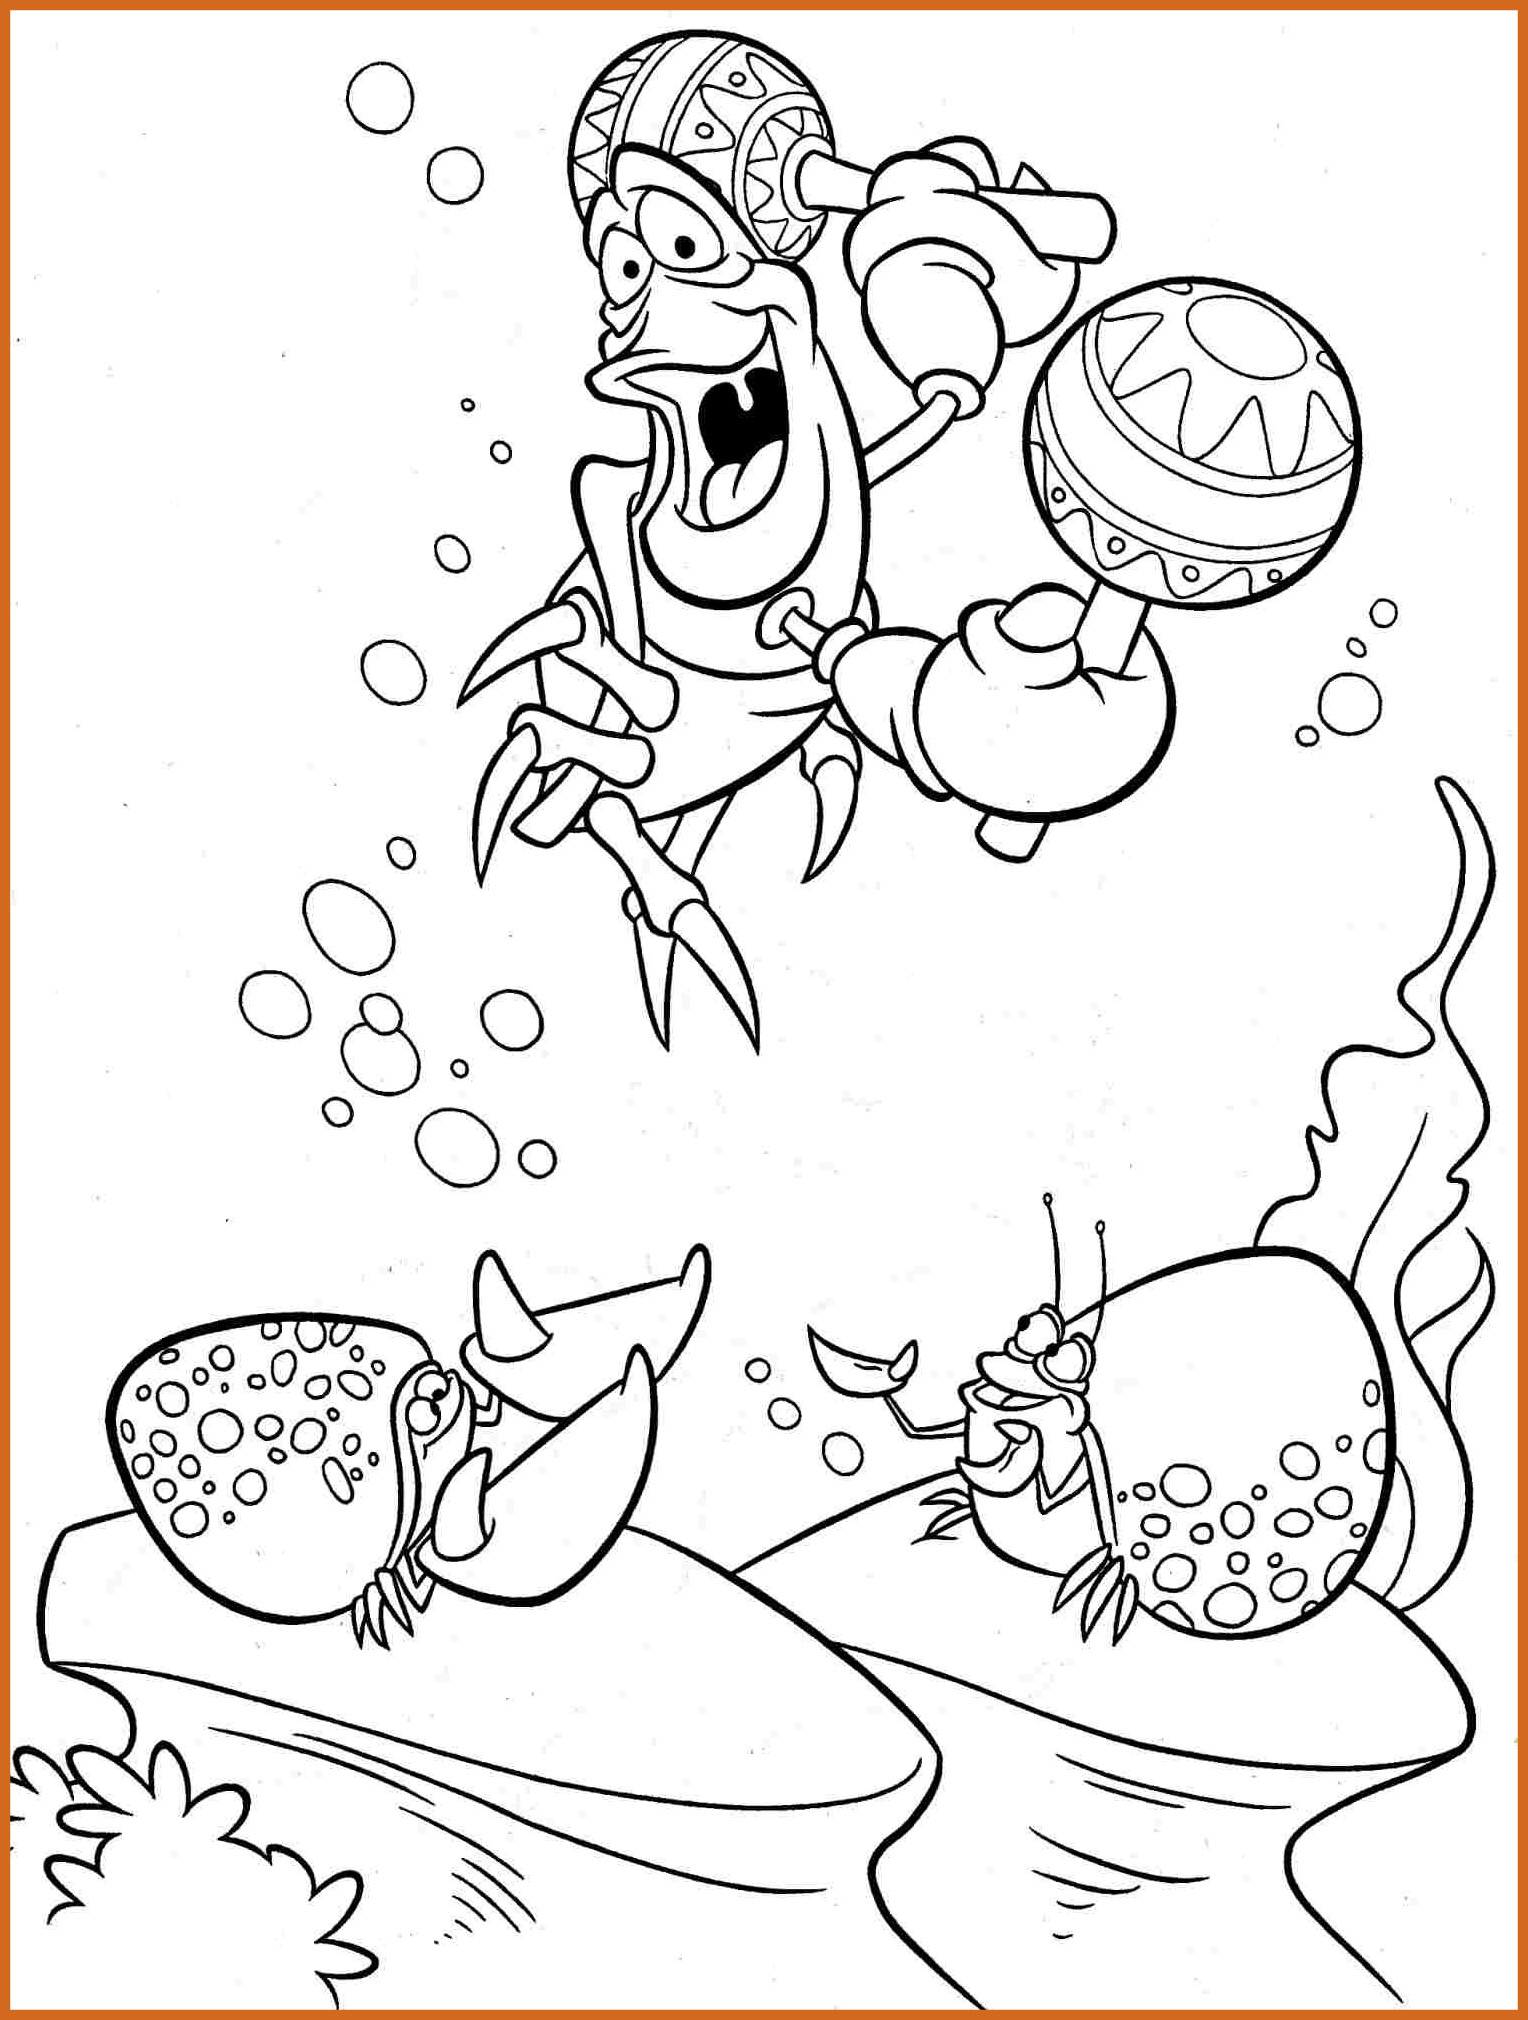 Ariel The Little Mermaid Coloring Pages At Getcolorings